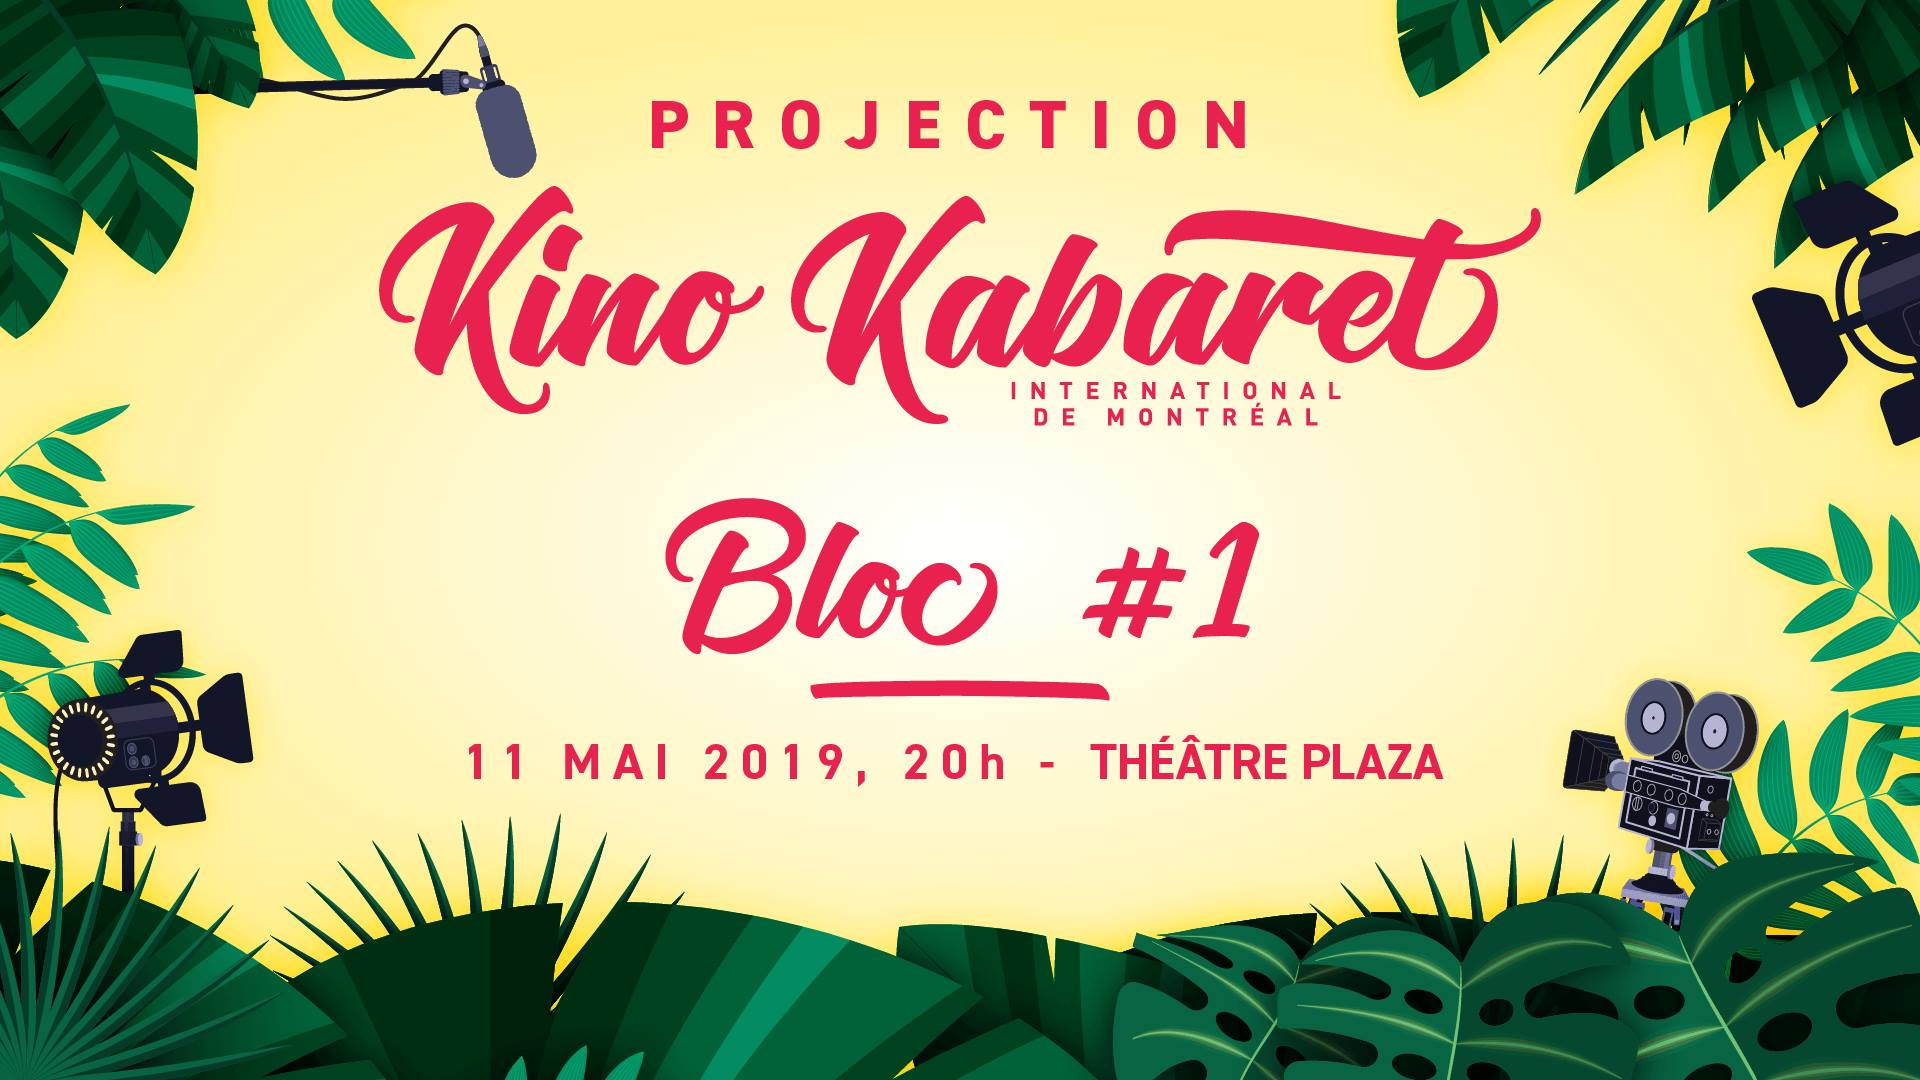 Kino Kabaret International de Montréal 2019